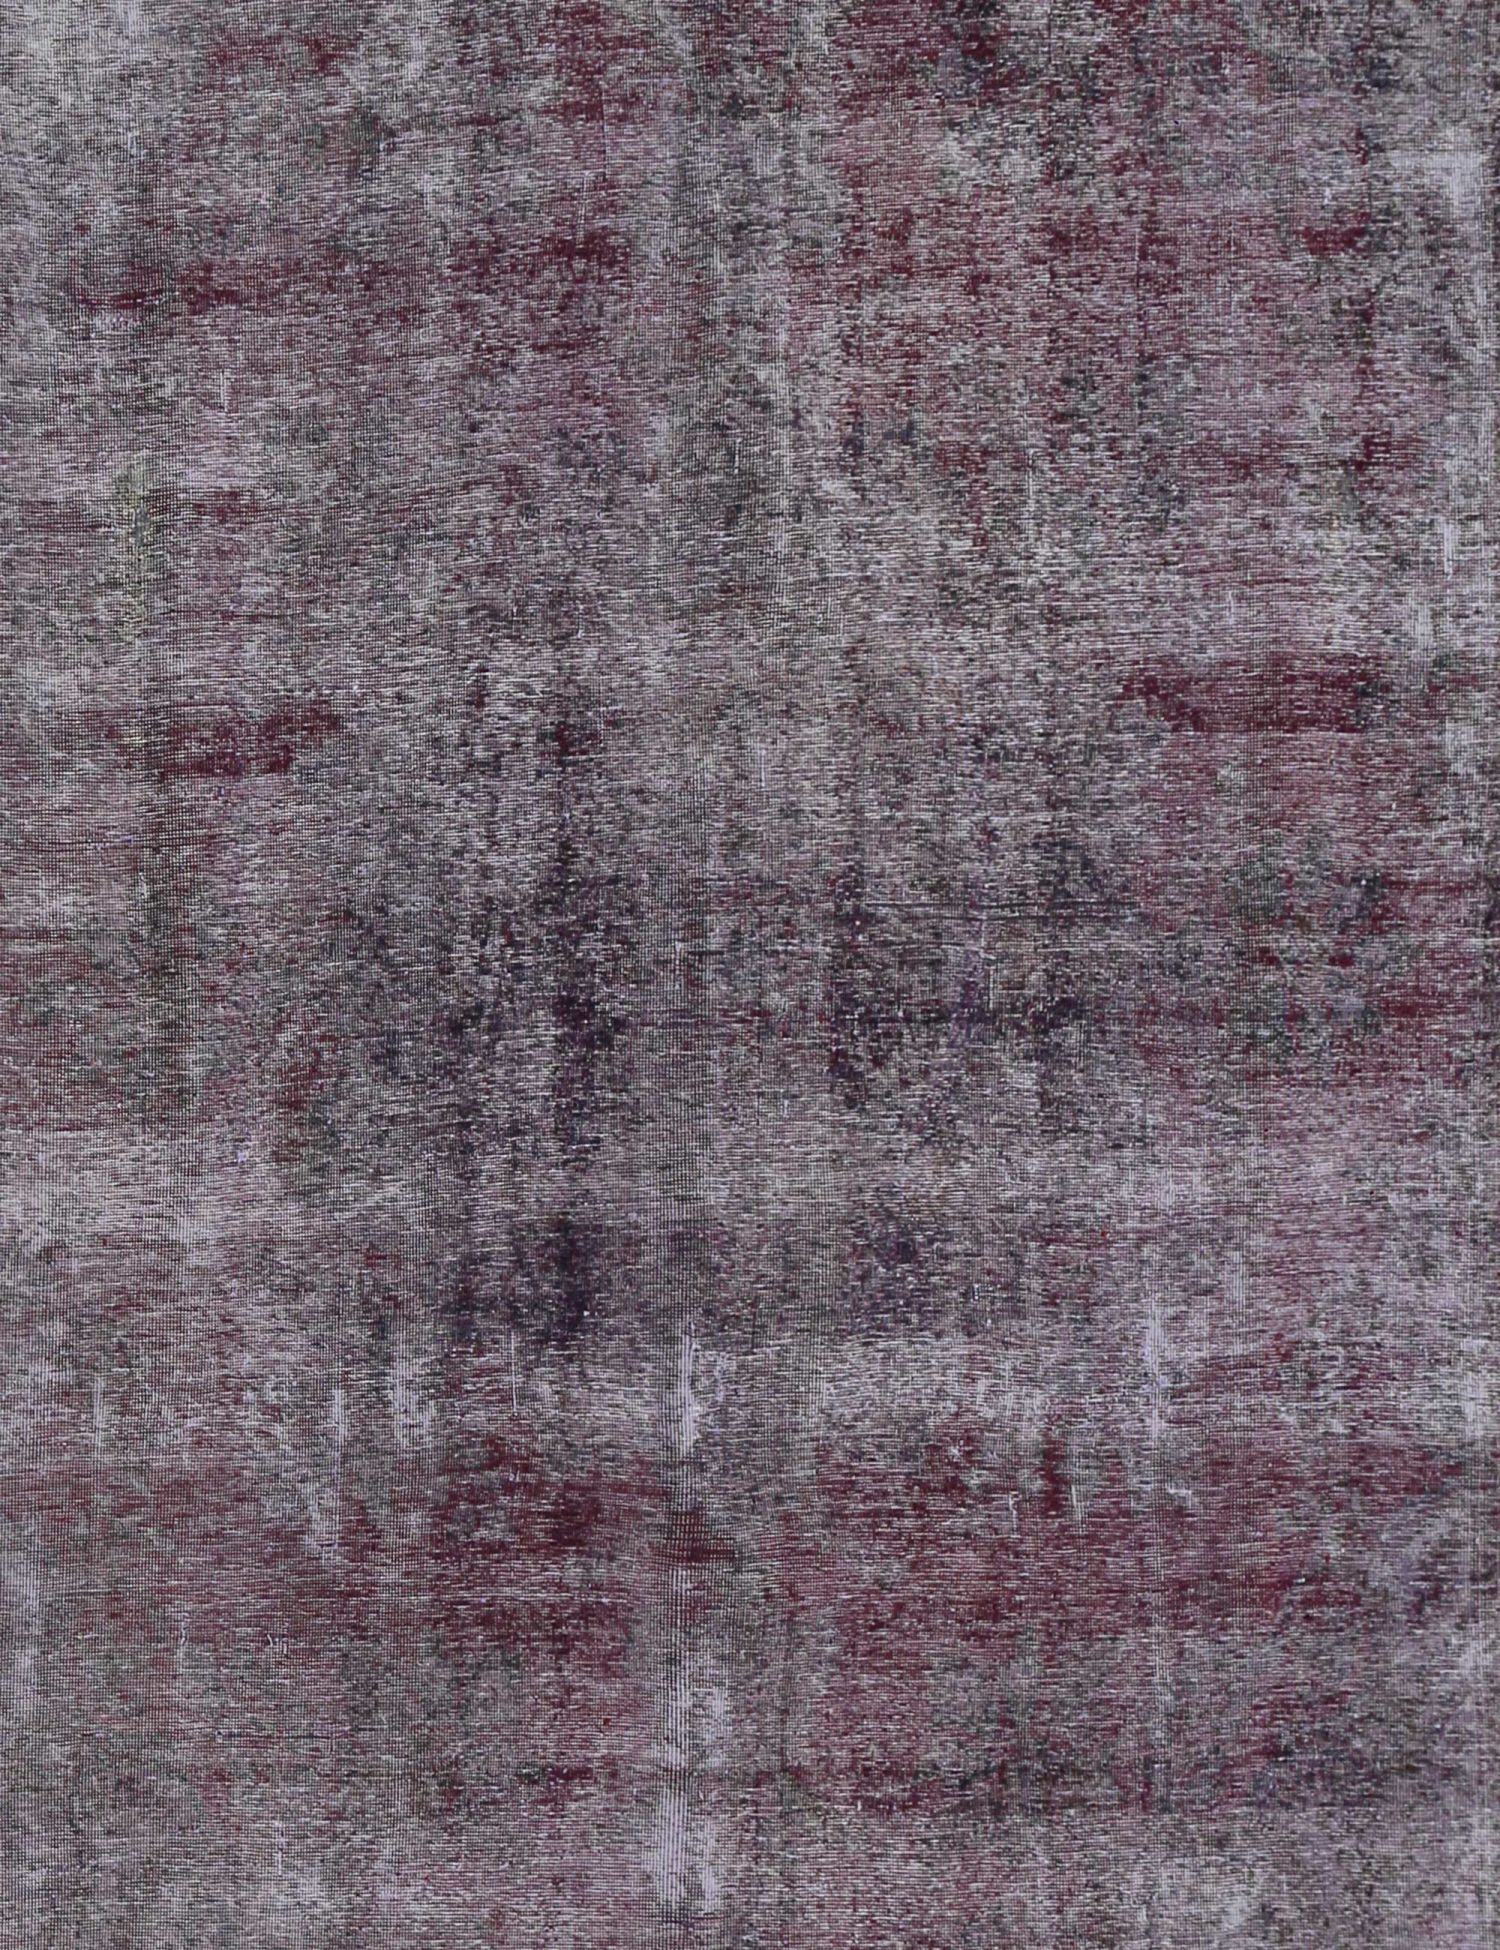 Vintage Carpet  purple <br/>380 x 293 cm